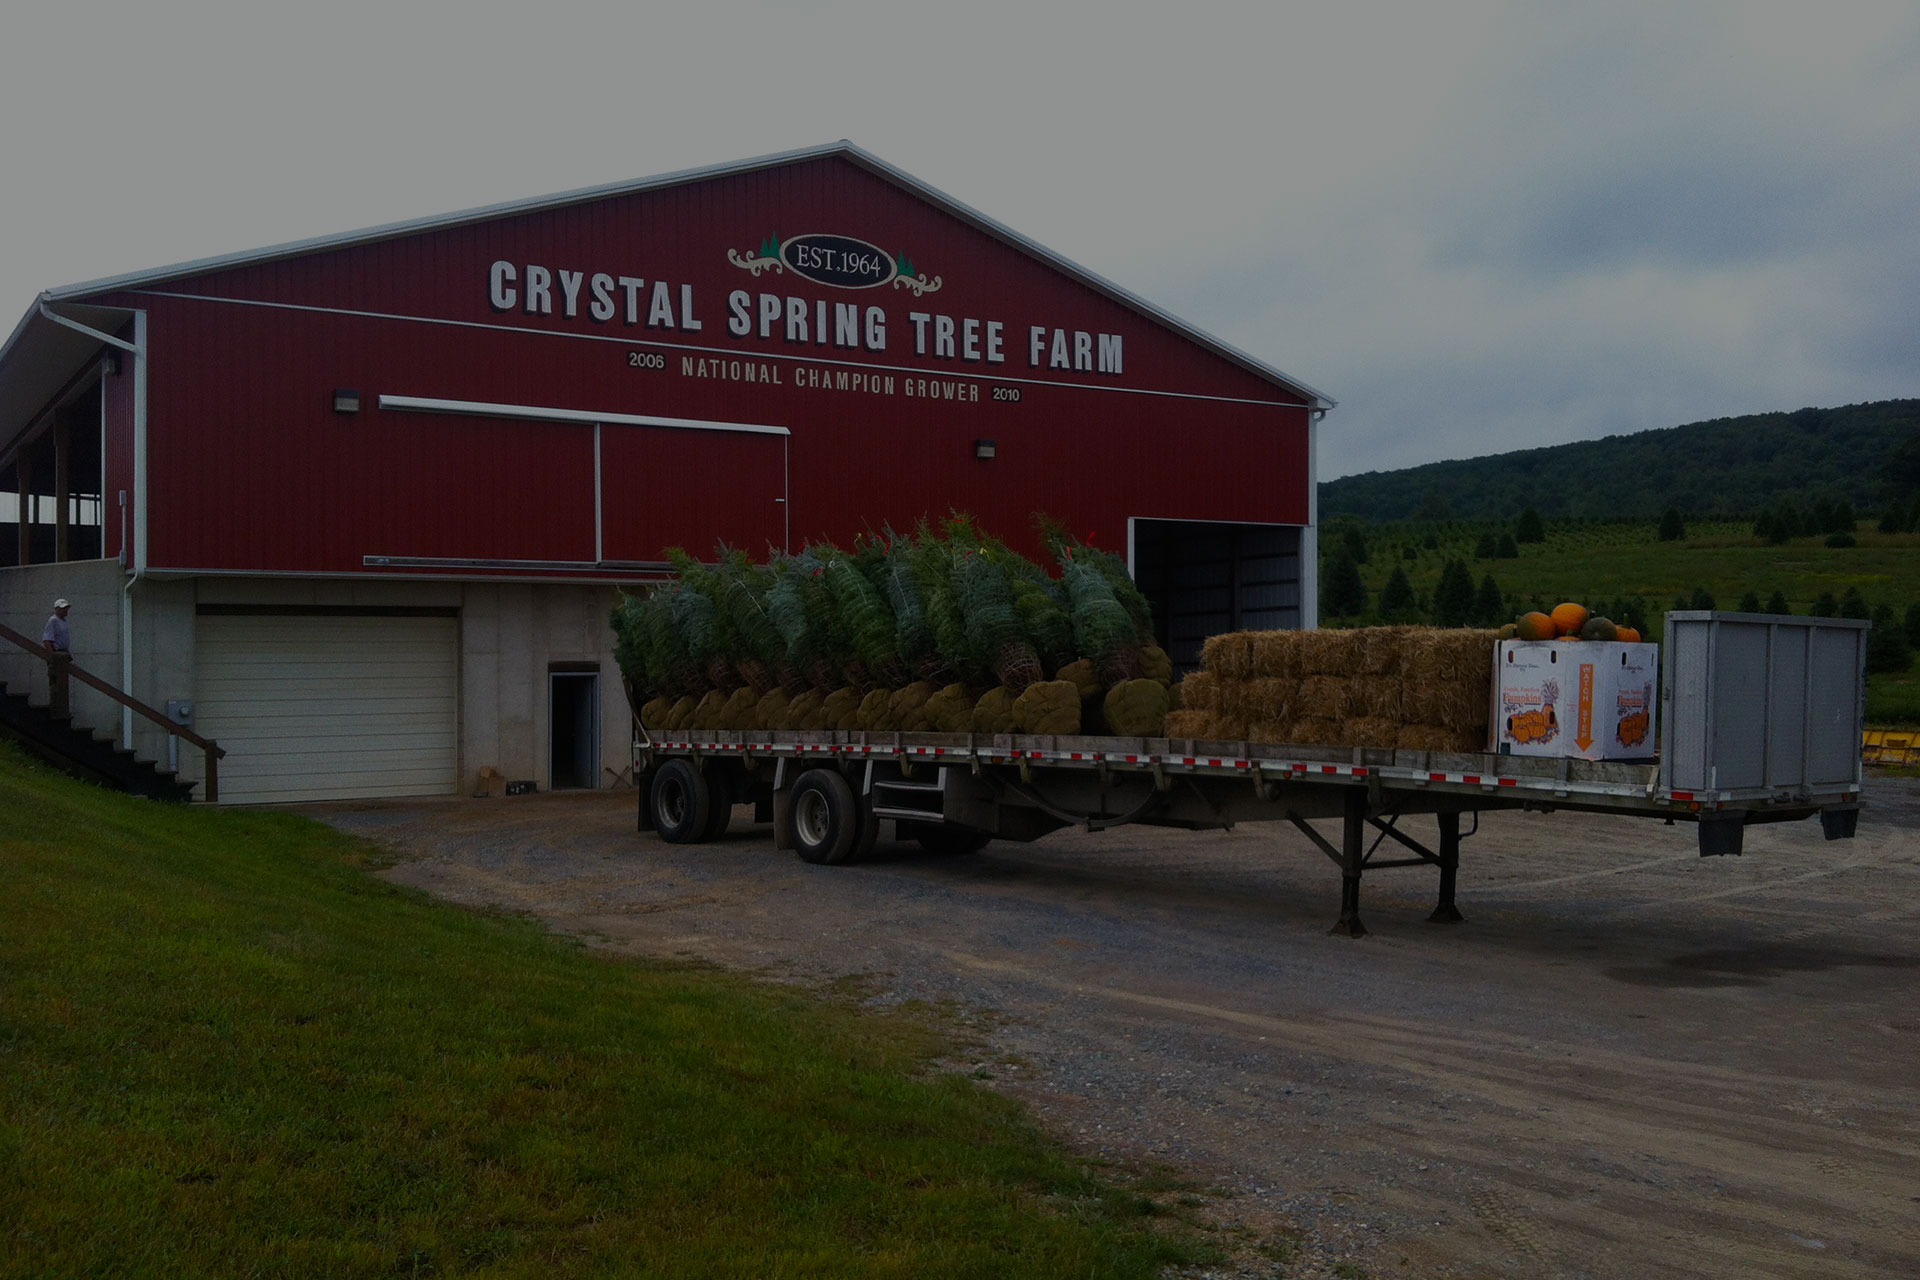 Crystal Spring Tree Farm Building with trees, hay & pumpkins